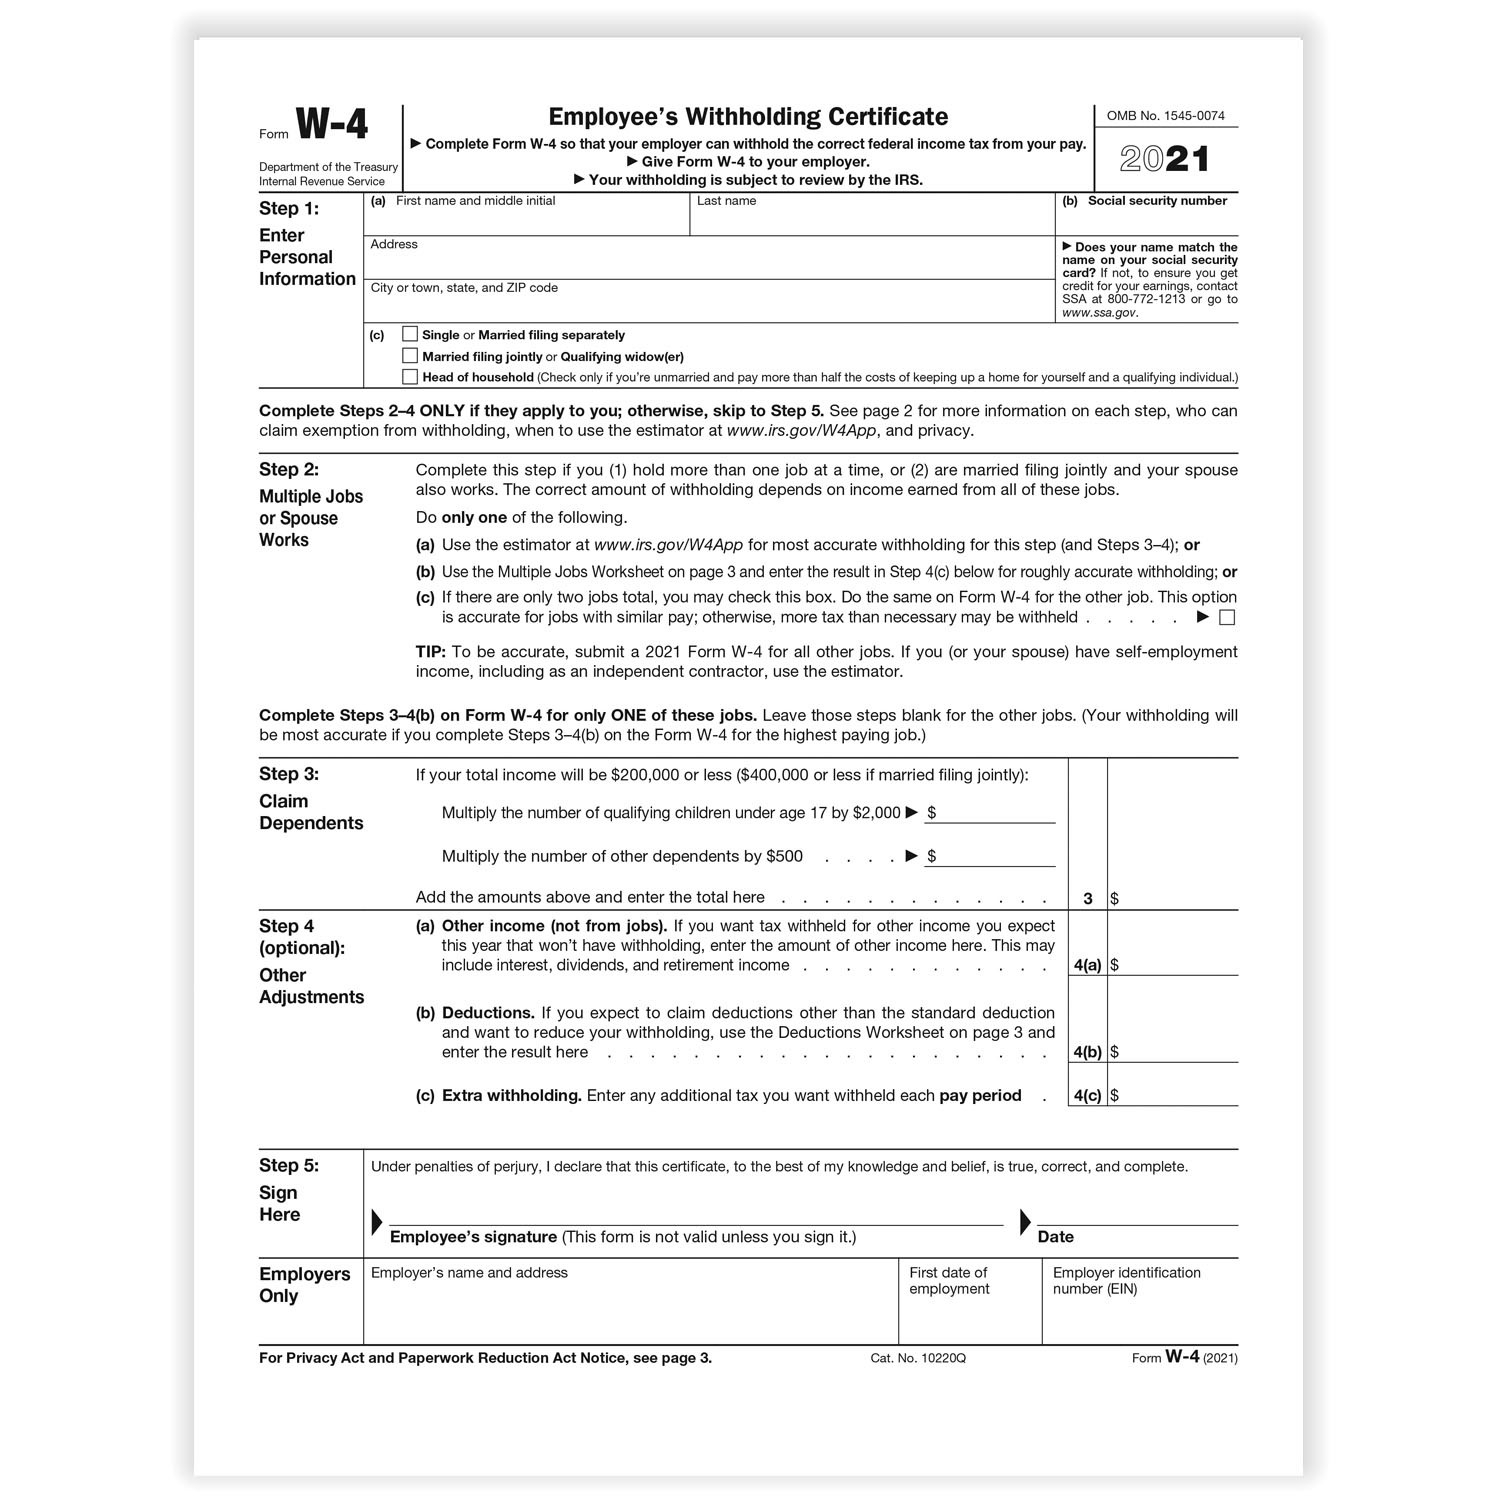 W-4 Forms-Irs Tax Forms For 2021 Printable